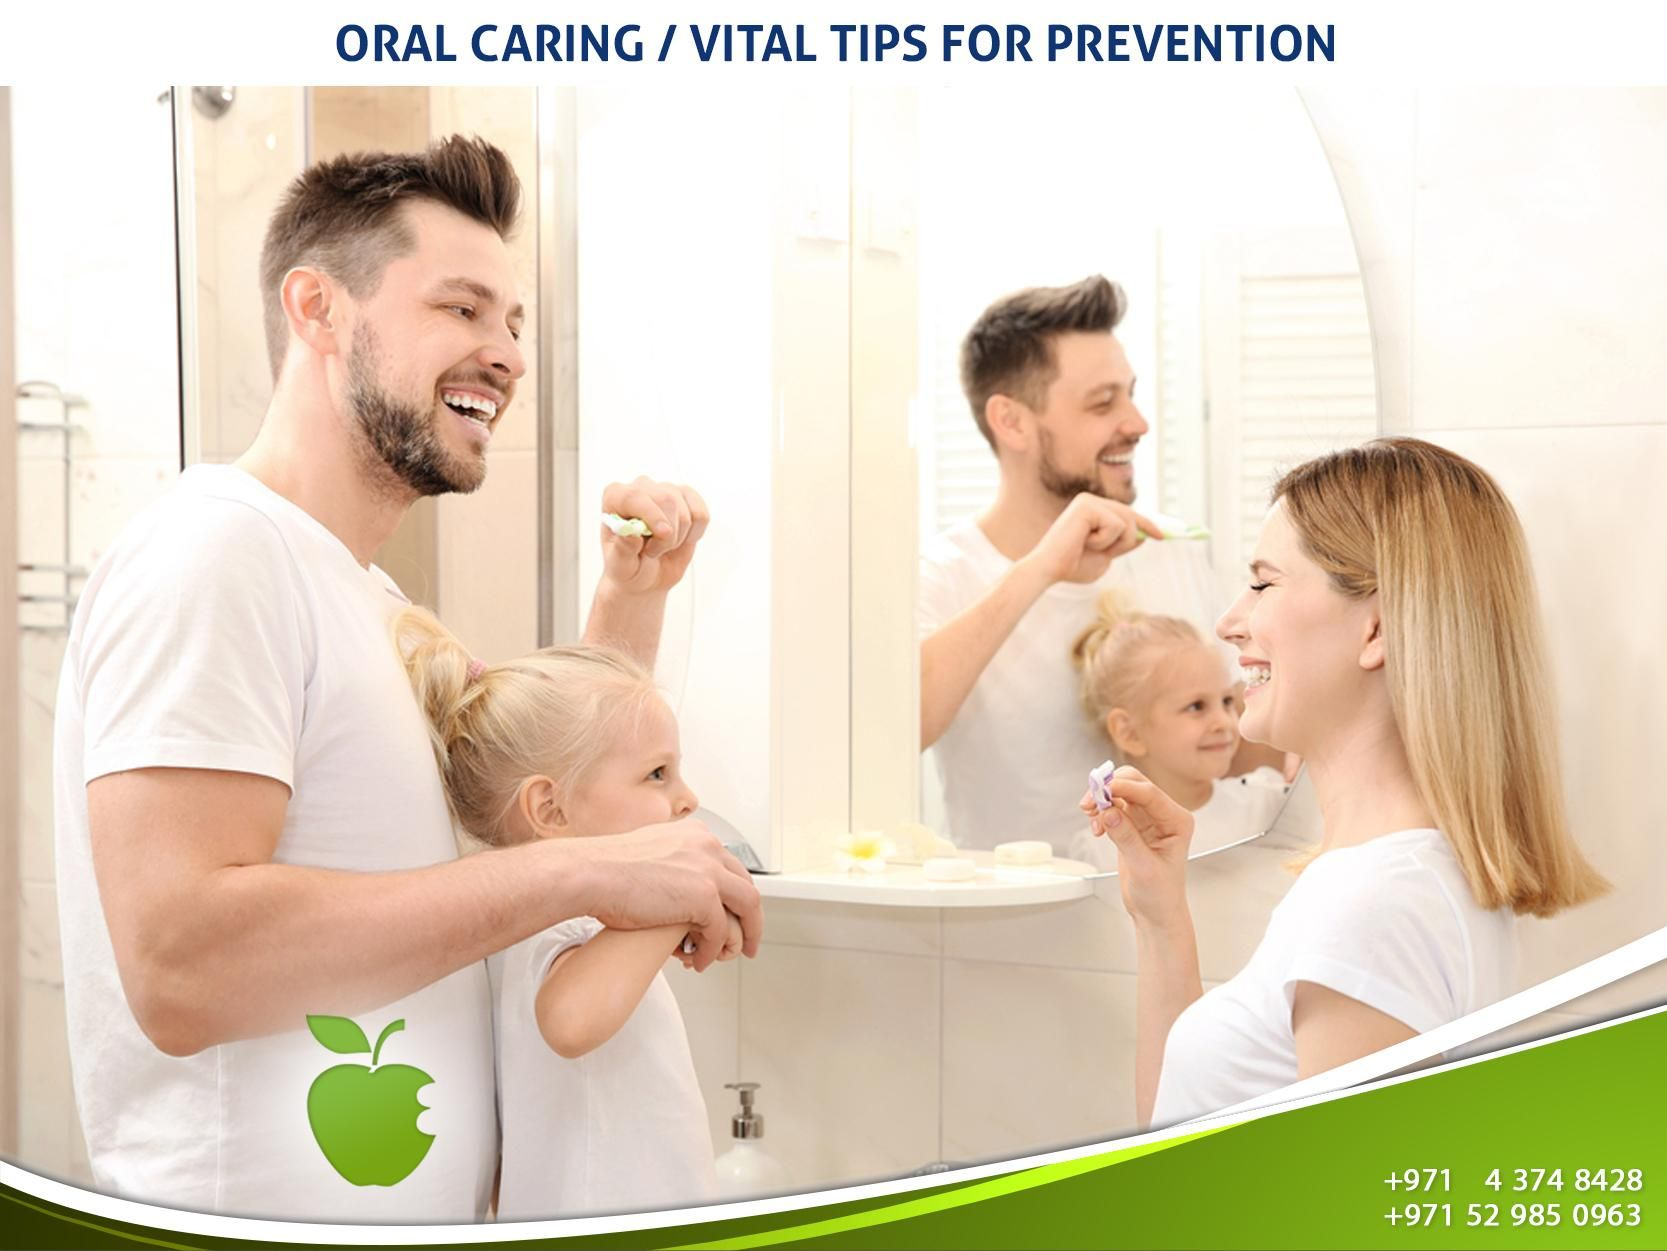 Keep your teeth and gums clean& healthy to prevent gum